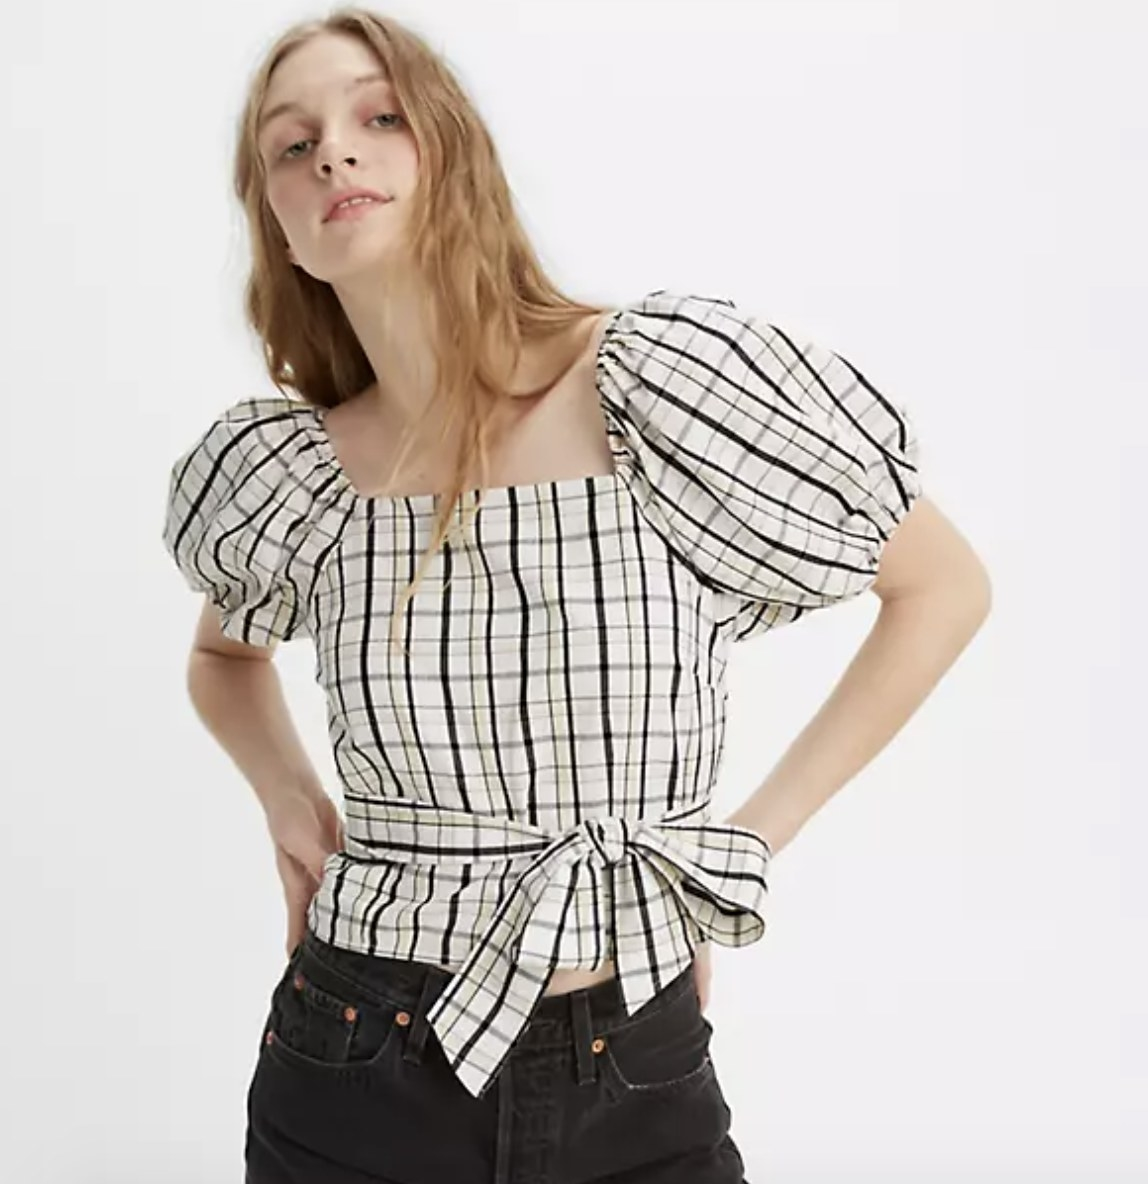 model wearing the top in white plaid with black jeans